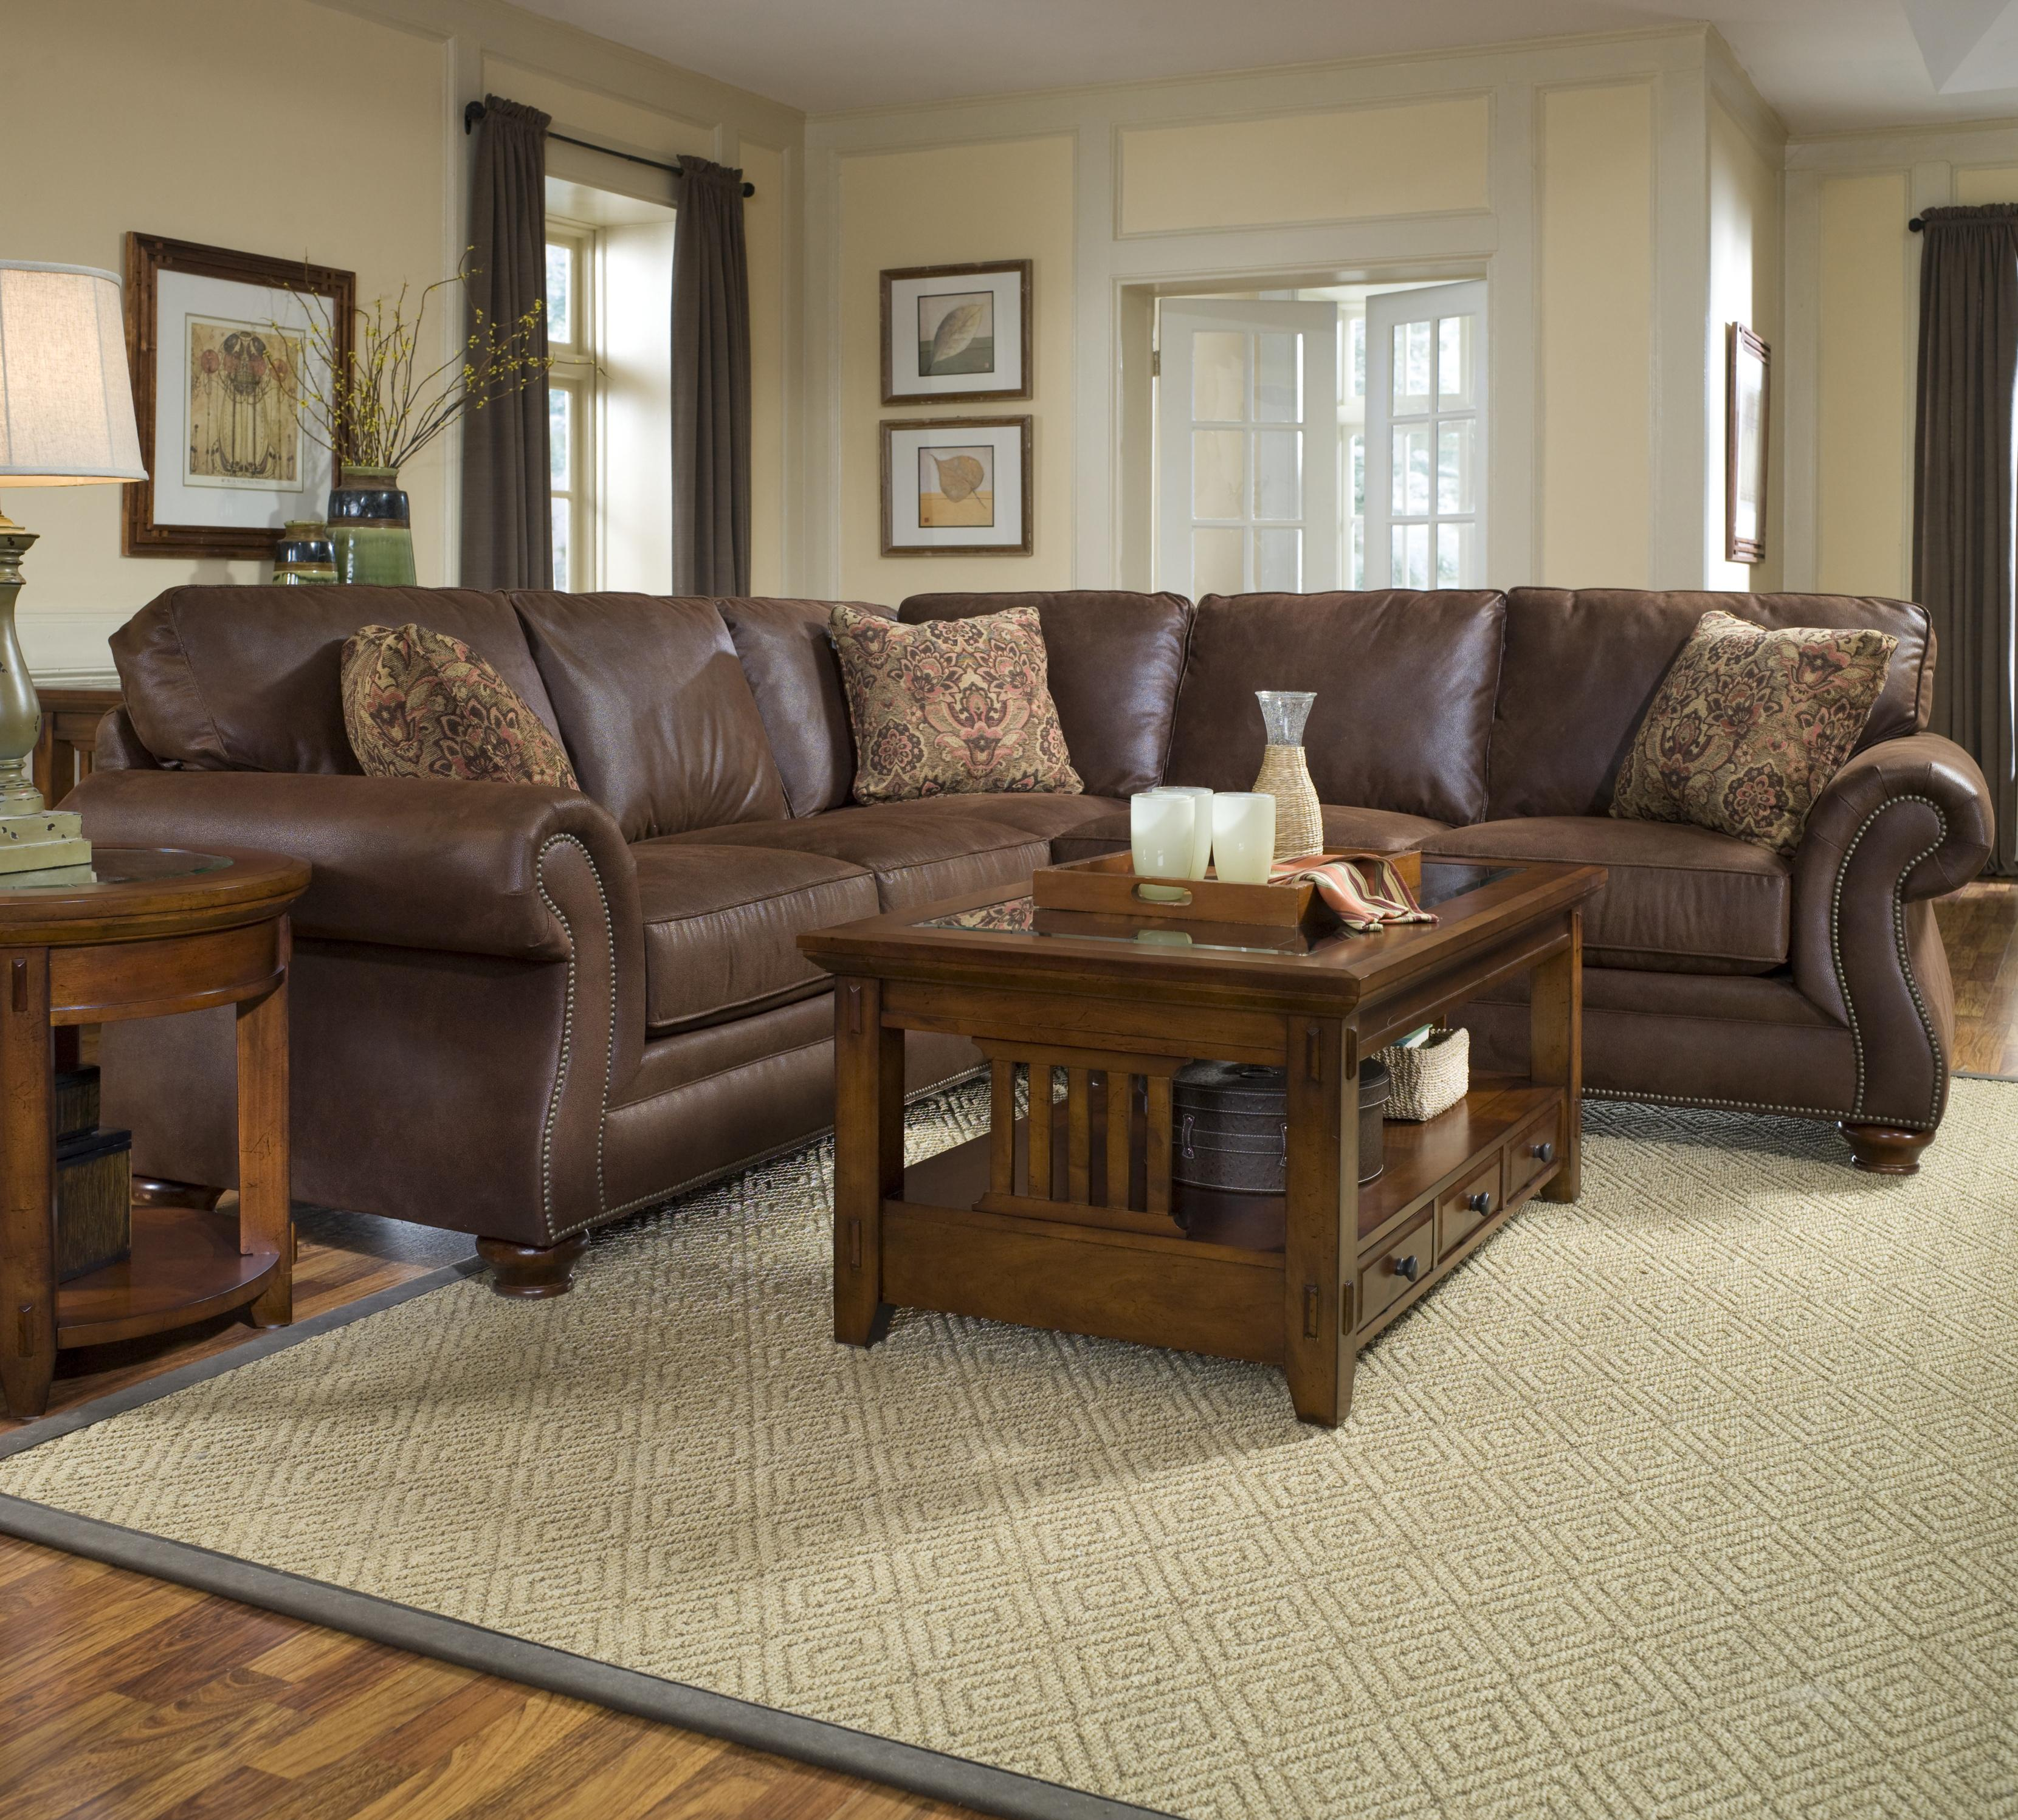 Broyhill Furniture Laramie Stationary Living Room Group | Westrich Furniture  U0026 Appliances | Stationary Living Room Groups